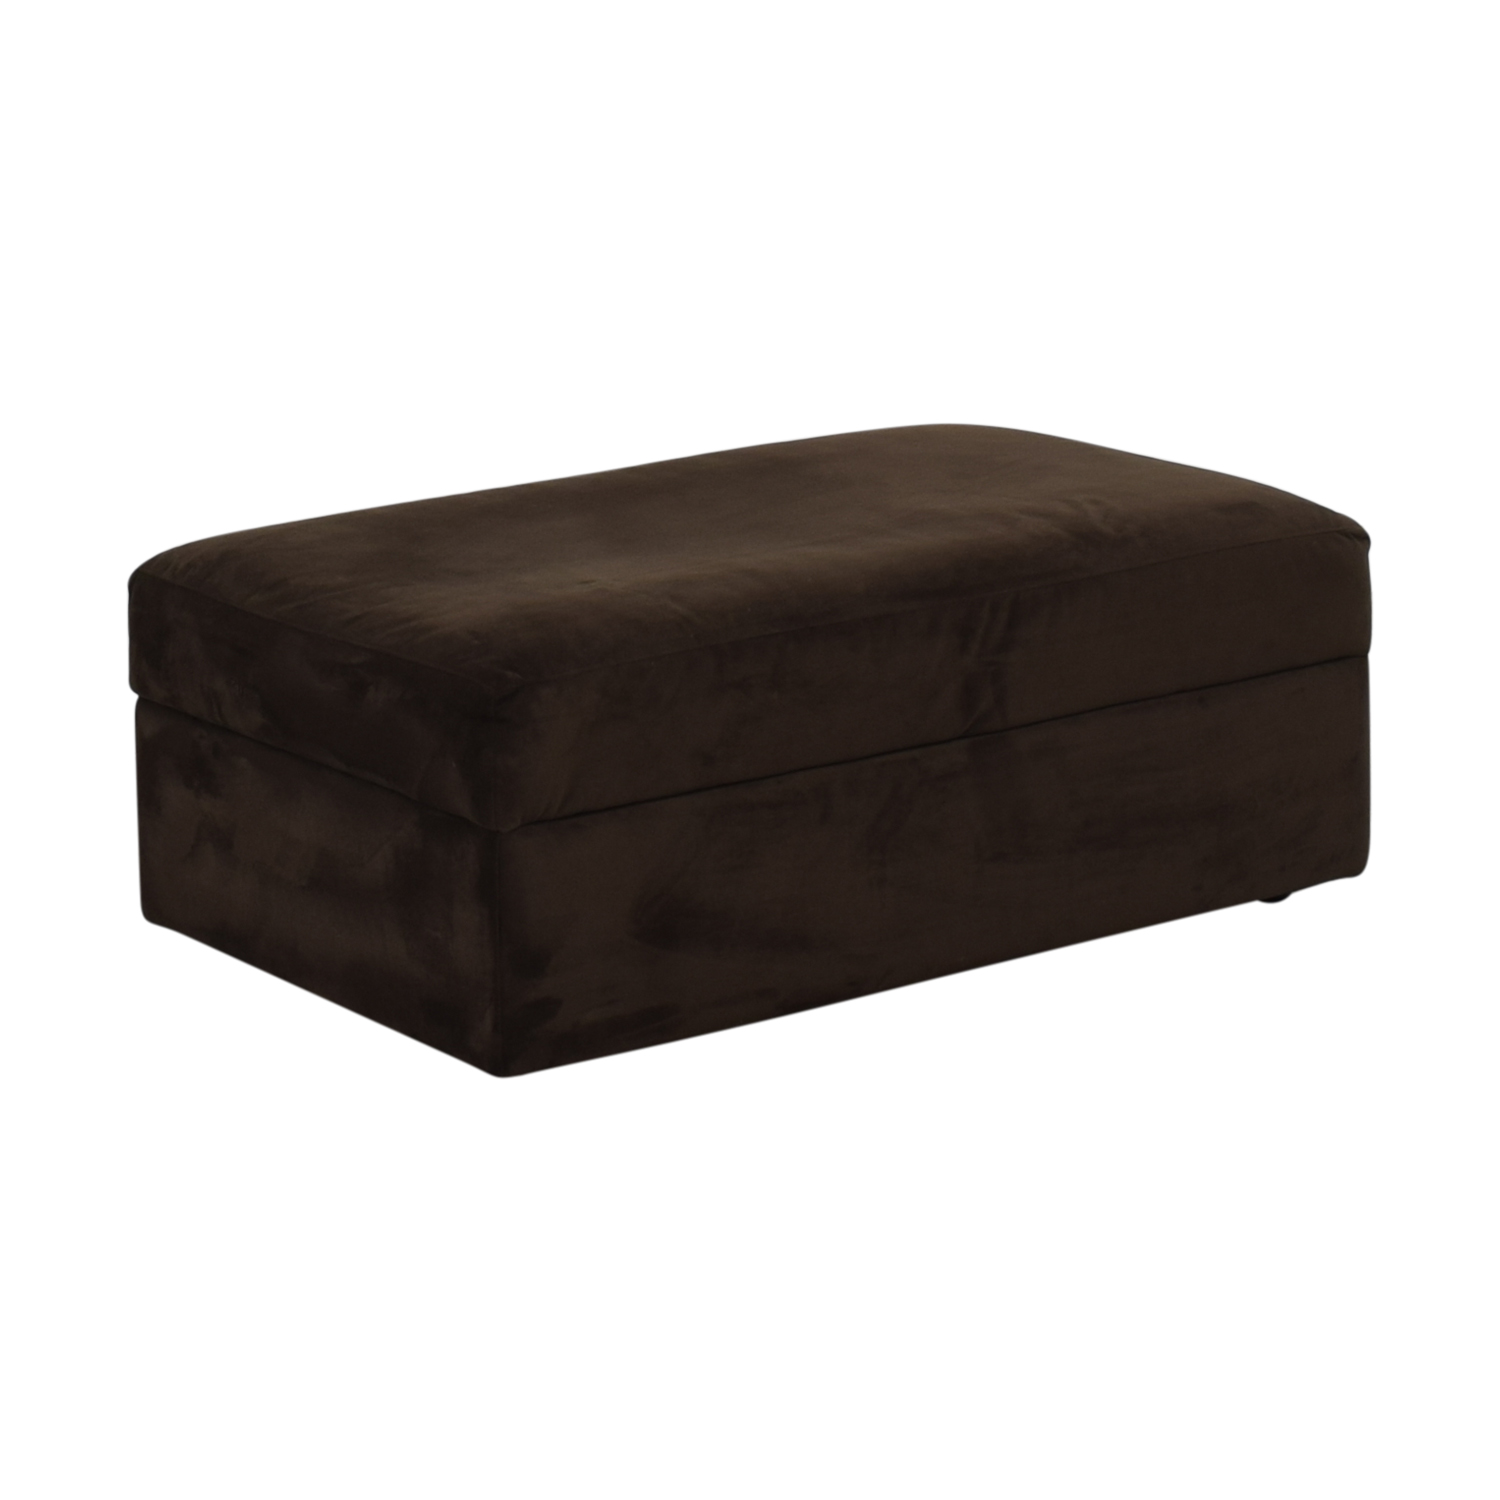 buy Crate & Barrel Storage Ottoman Crate & Barrel